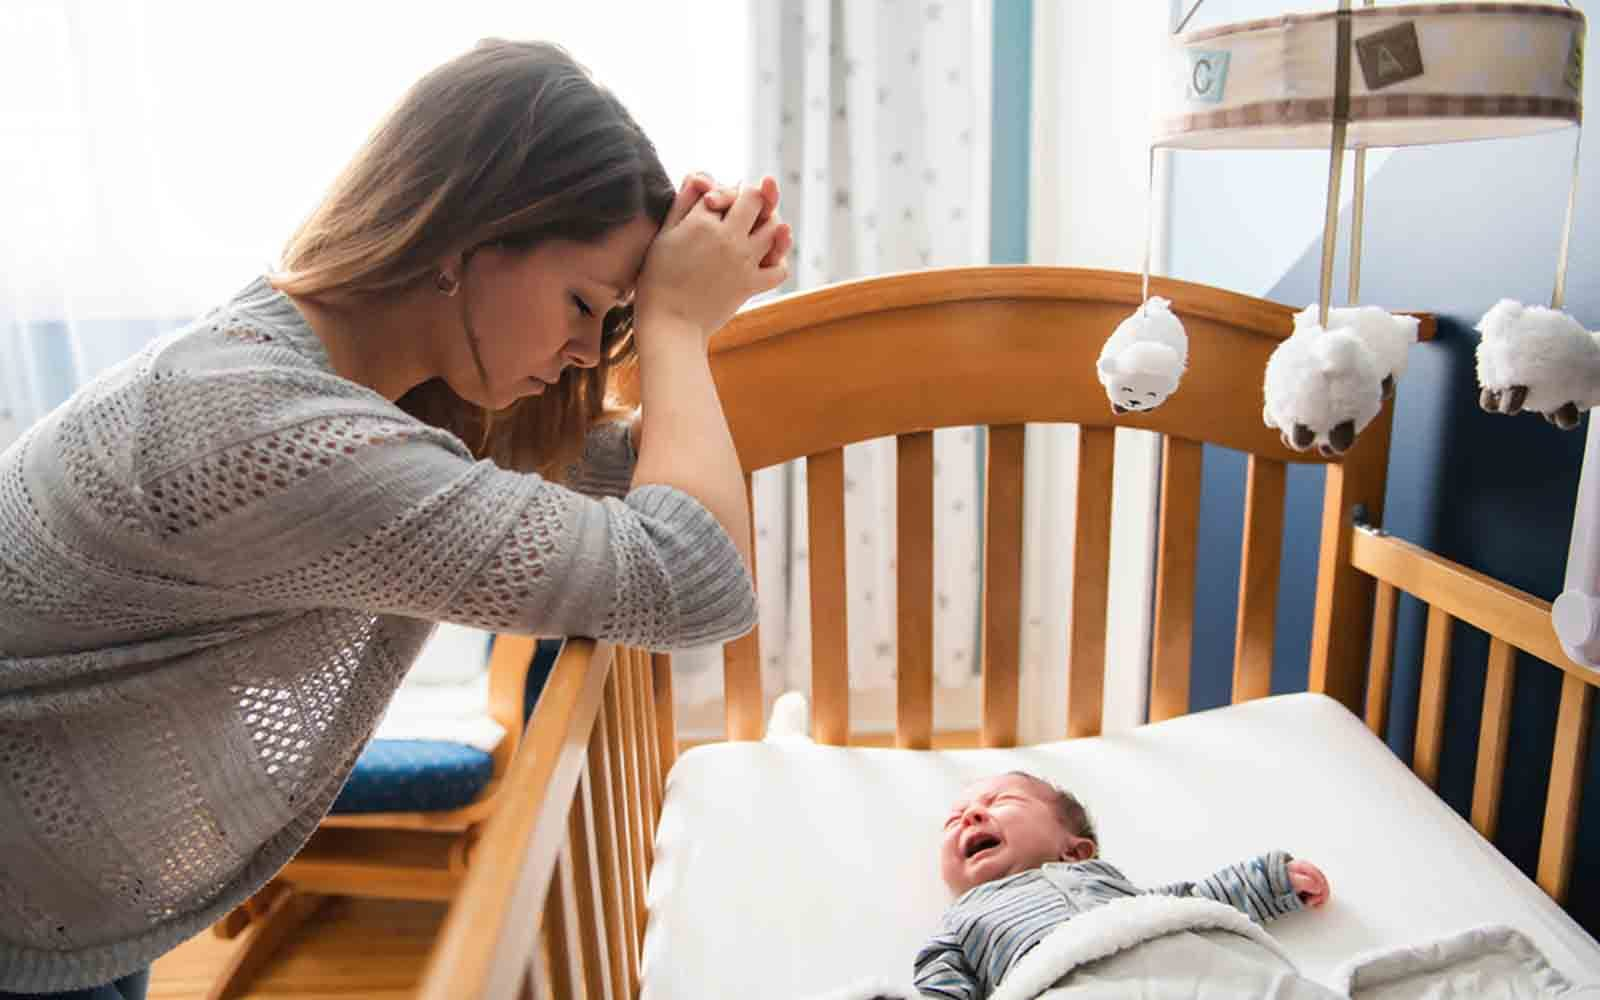 Women's Health: The Baby Blues and Postnatal Depression